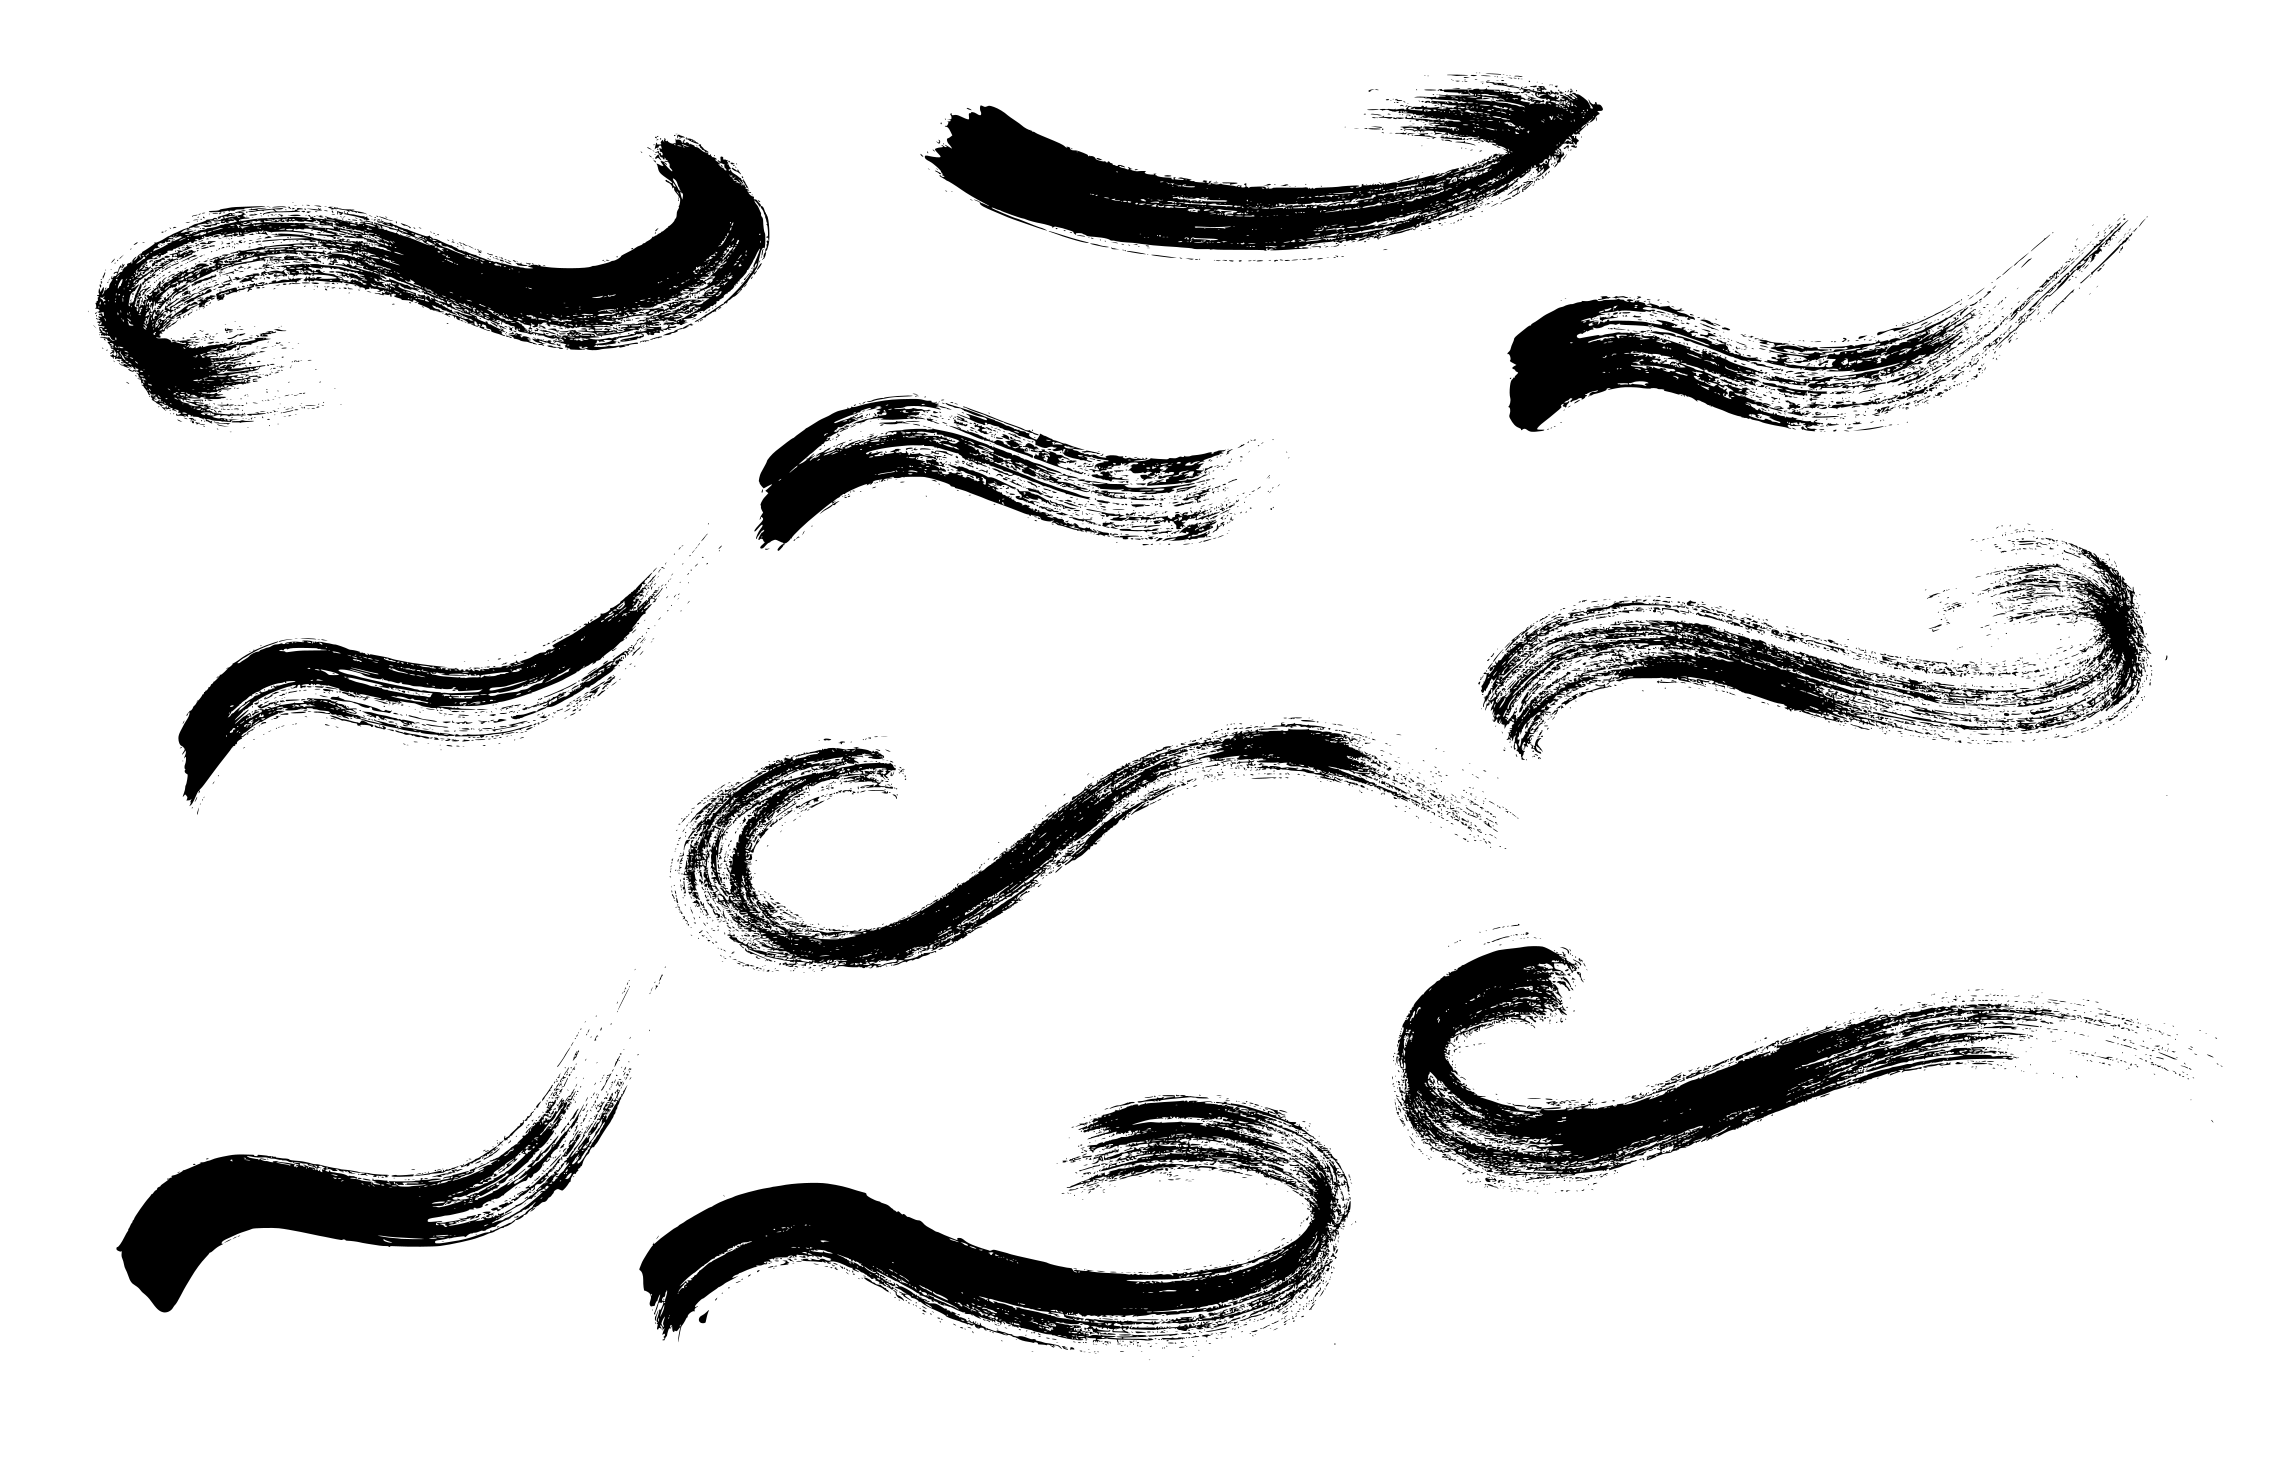 10-curved-grunge-brush-stroke-cover.png